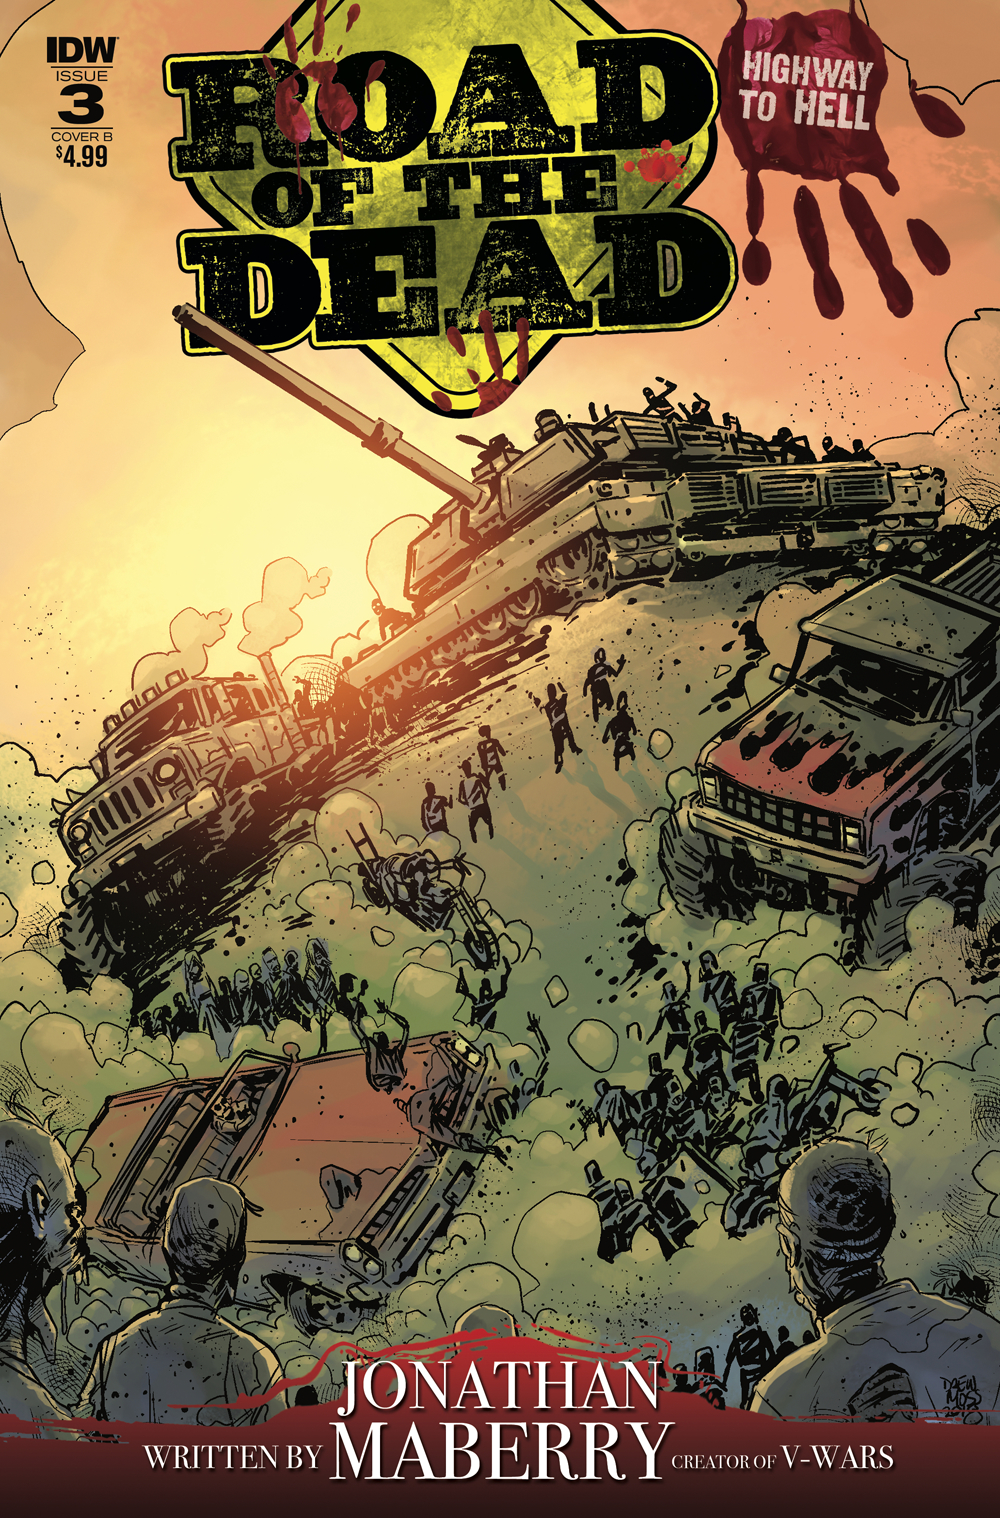 ROAD OF THE DEAD HIGHWAY TO HELL #3 CVR B MOSS